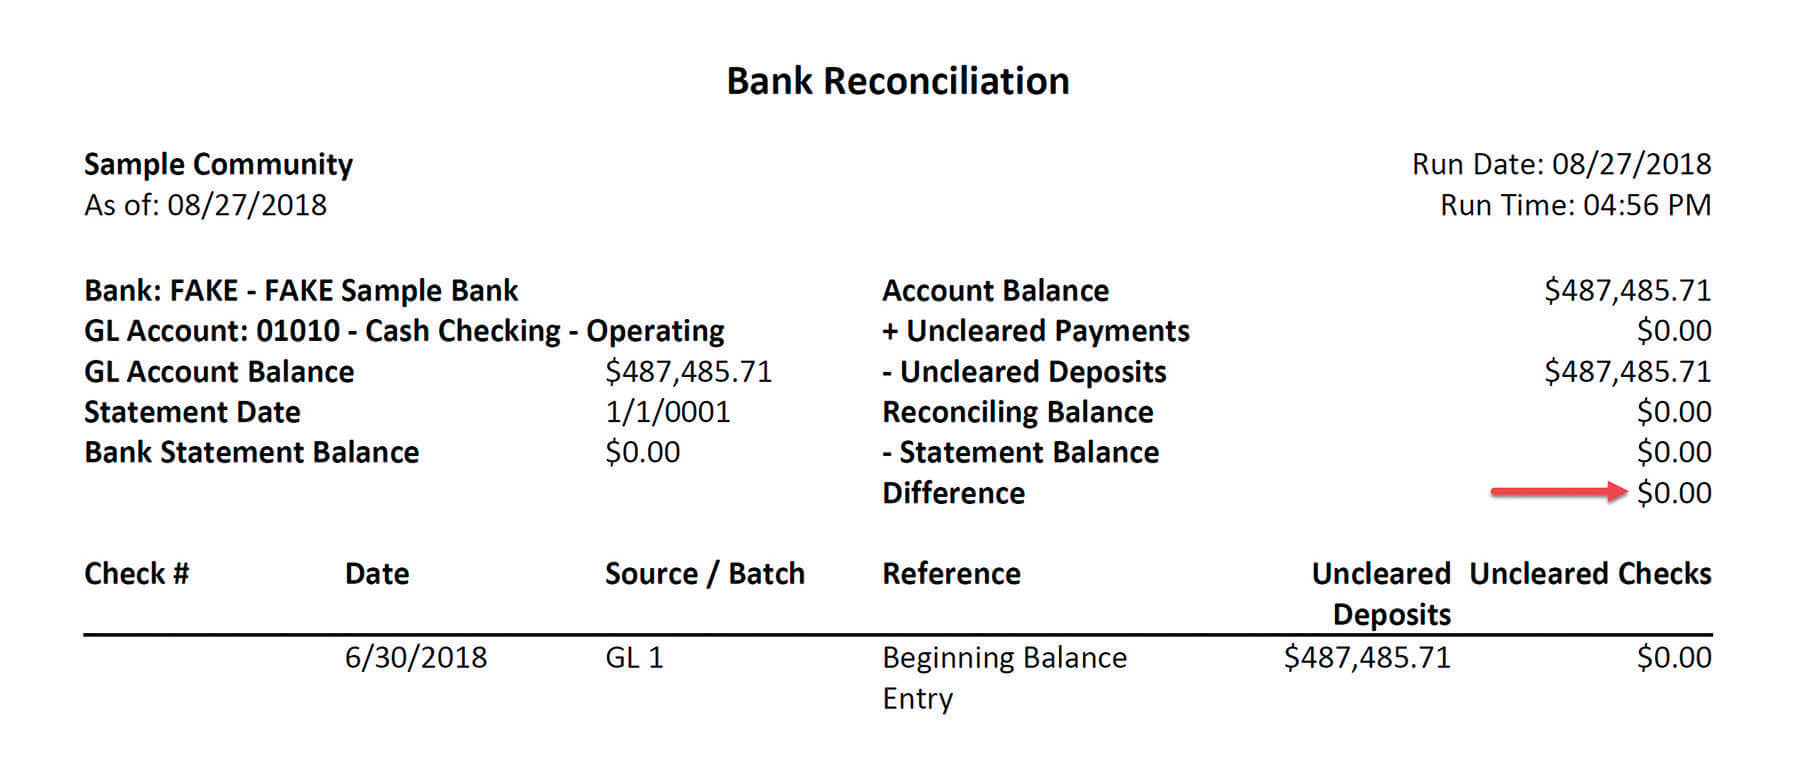 Bank Reconciliation Report Example